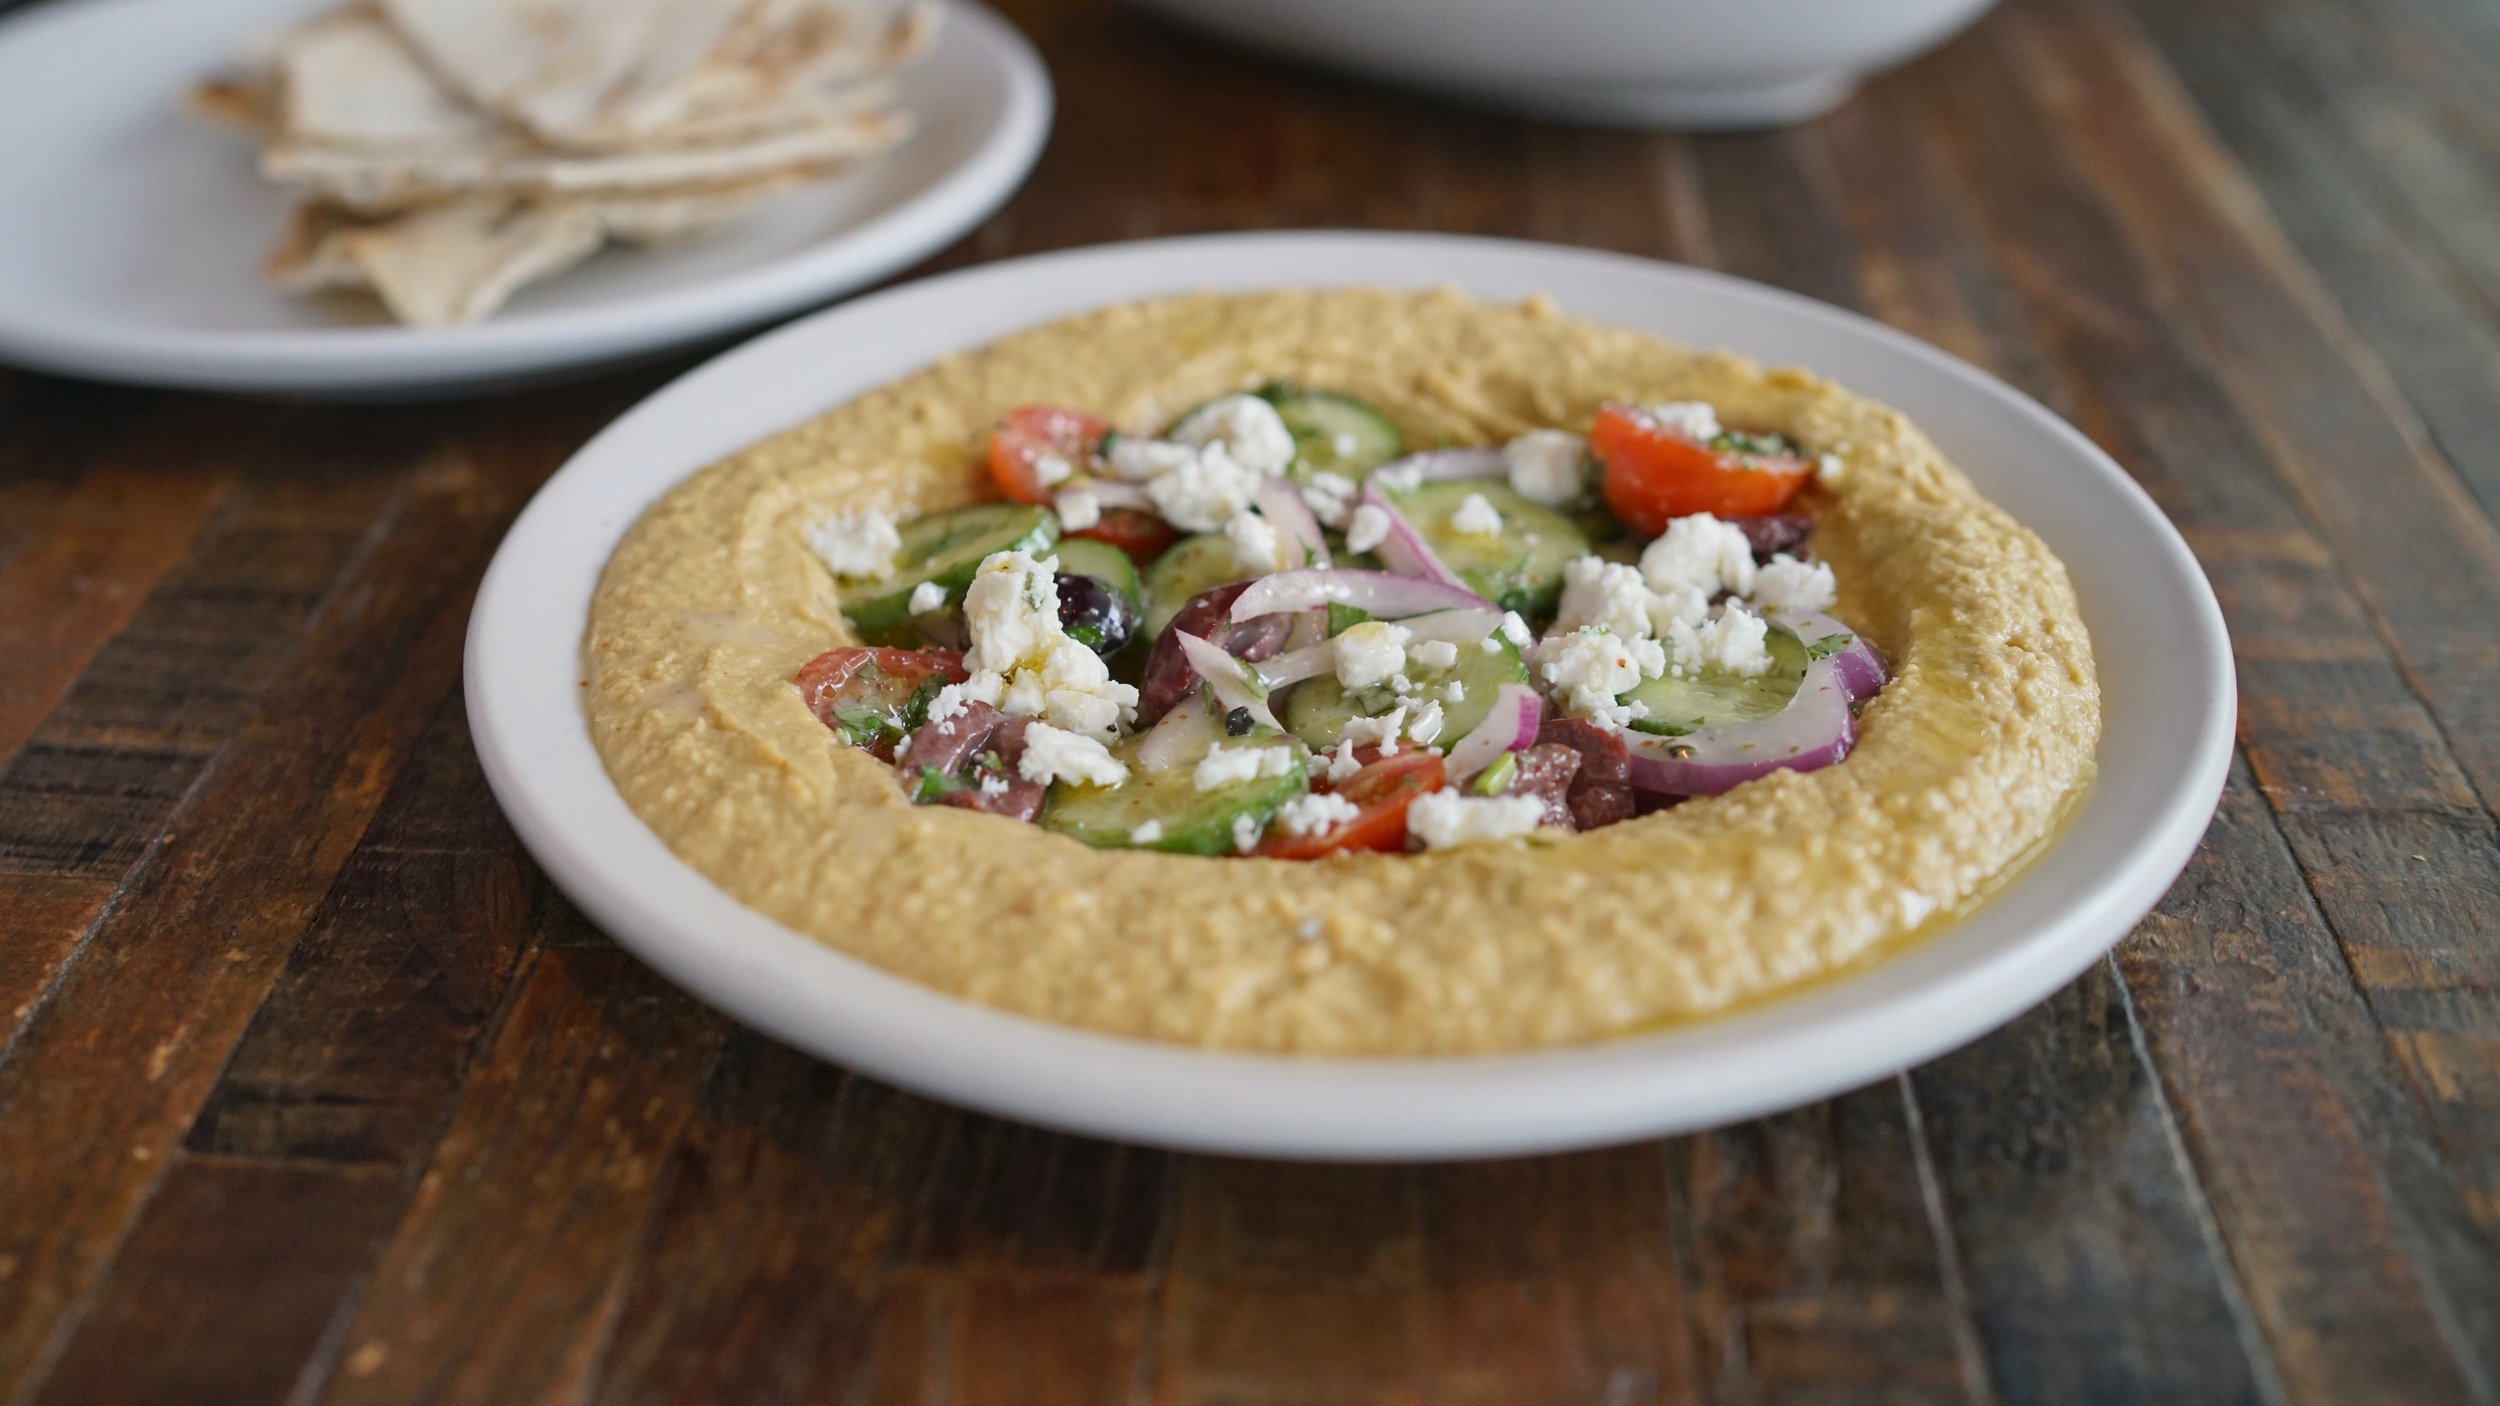 Hummus from True Food Kitchen (coming to CityPlace in 2019)